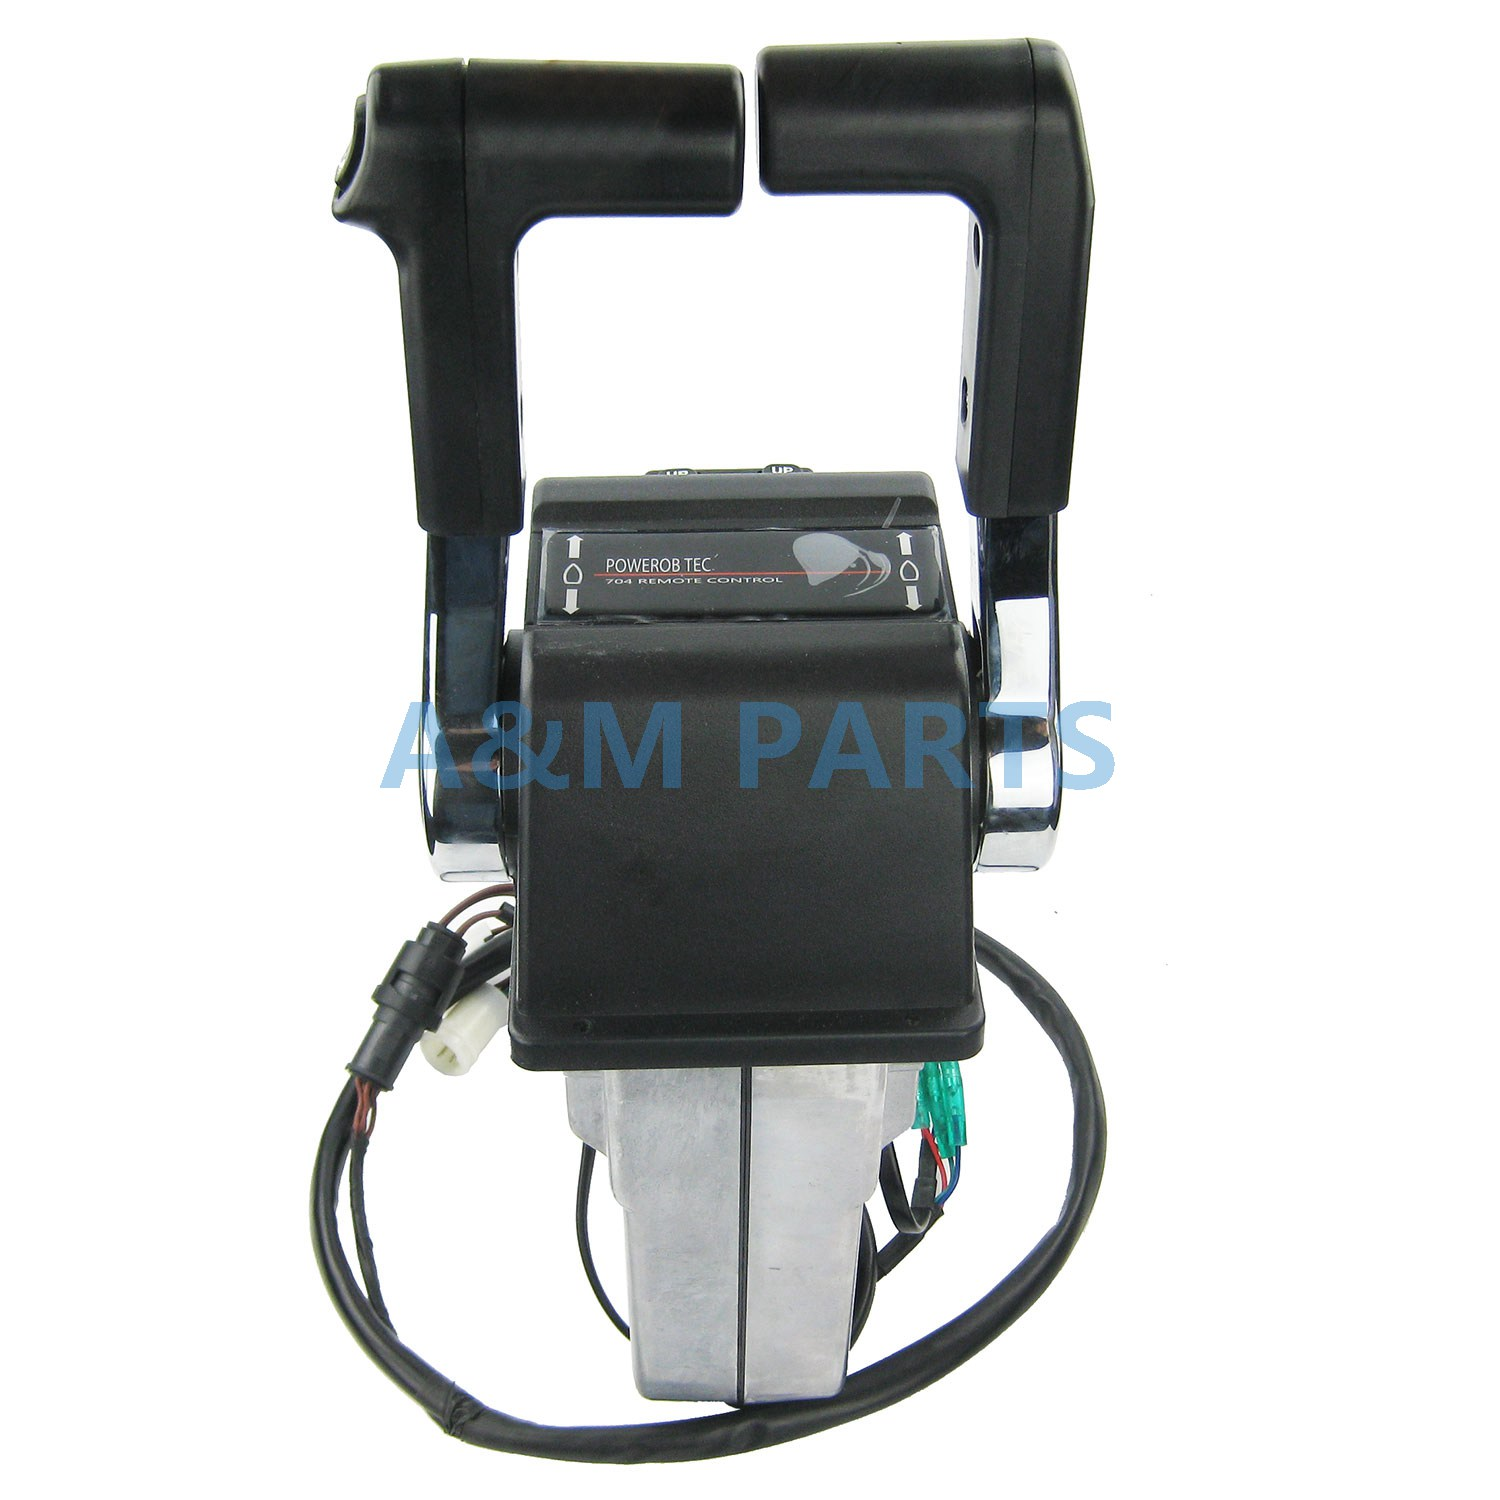 Oem Outboard Engine Twin Binnacle Remote Control Box Dual Top Mount Yamaha 704 Wiring Diagram For In Marine Hardware From Automobiles Motorcycles On